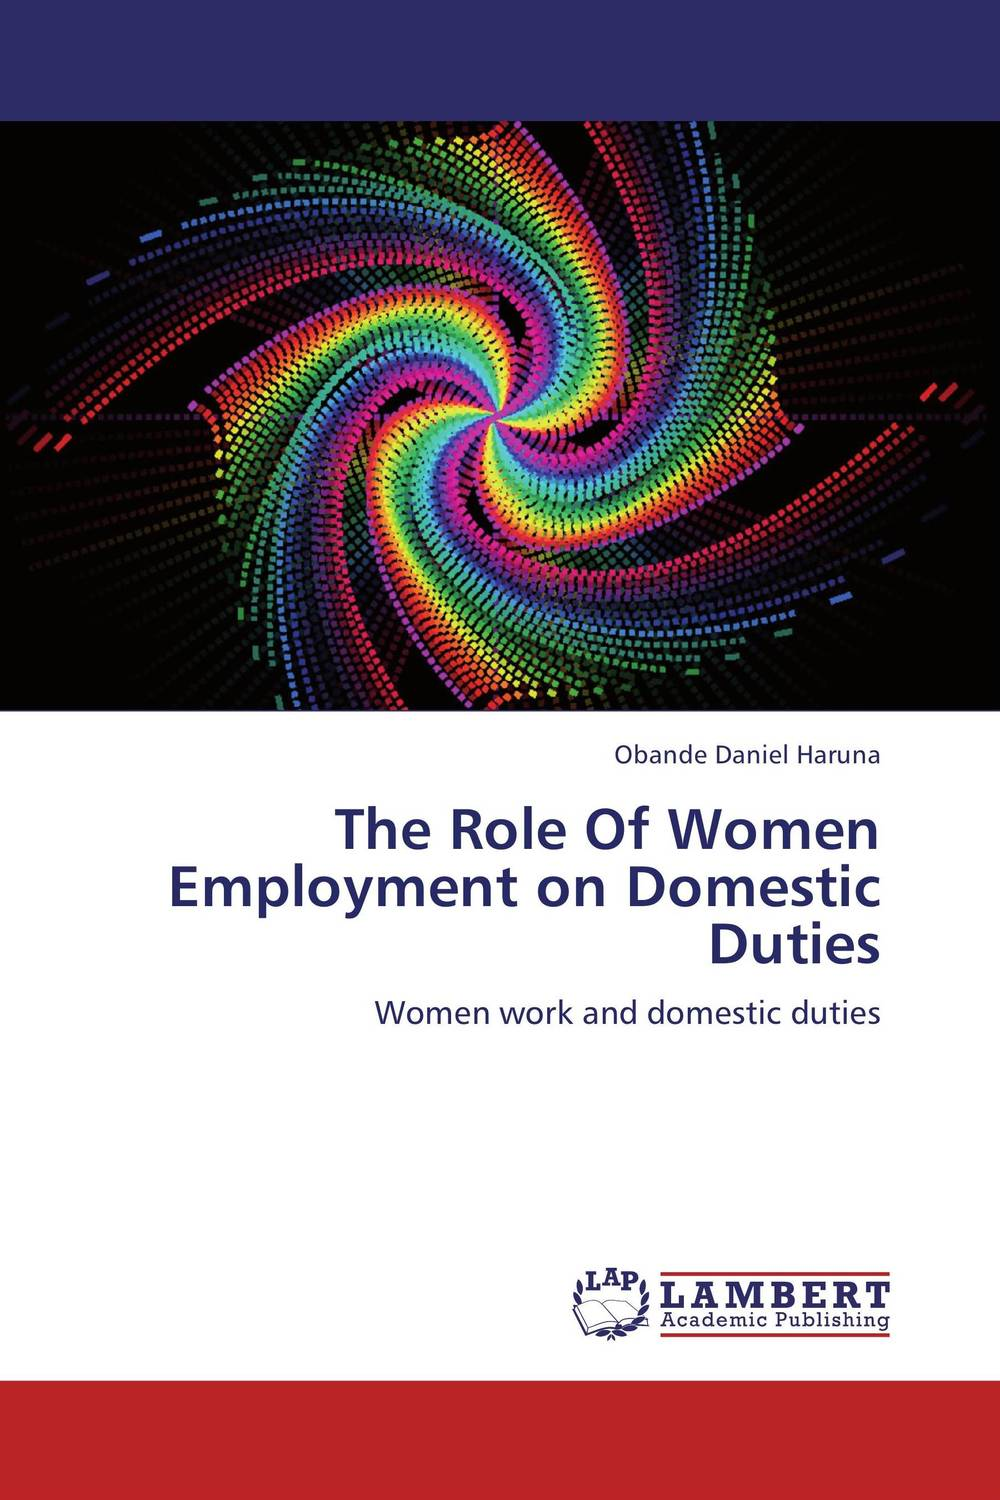 The Role Of Women Employment on Domestic Duties